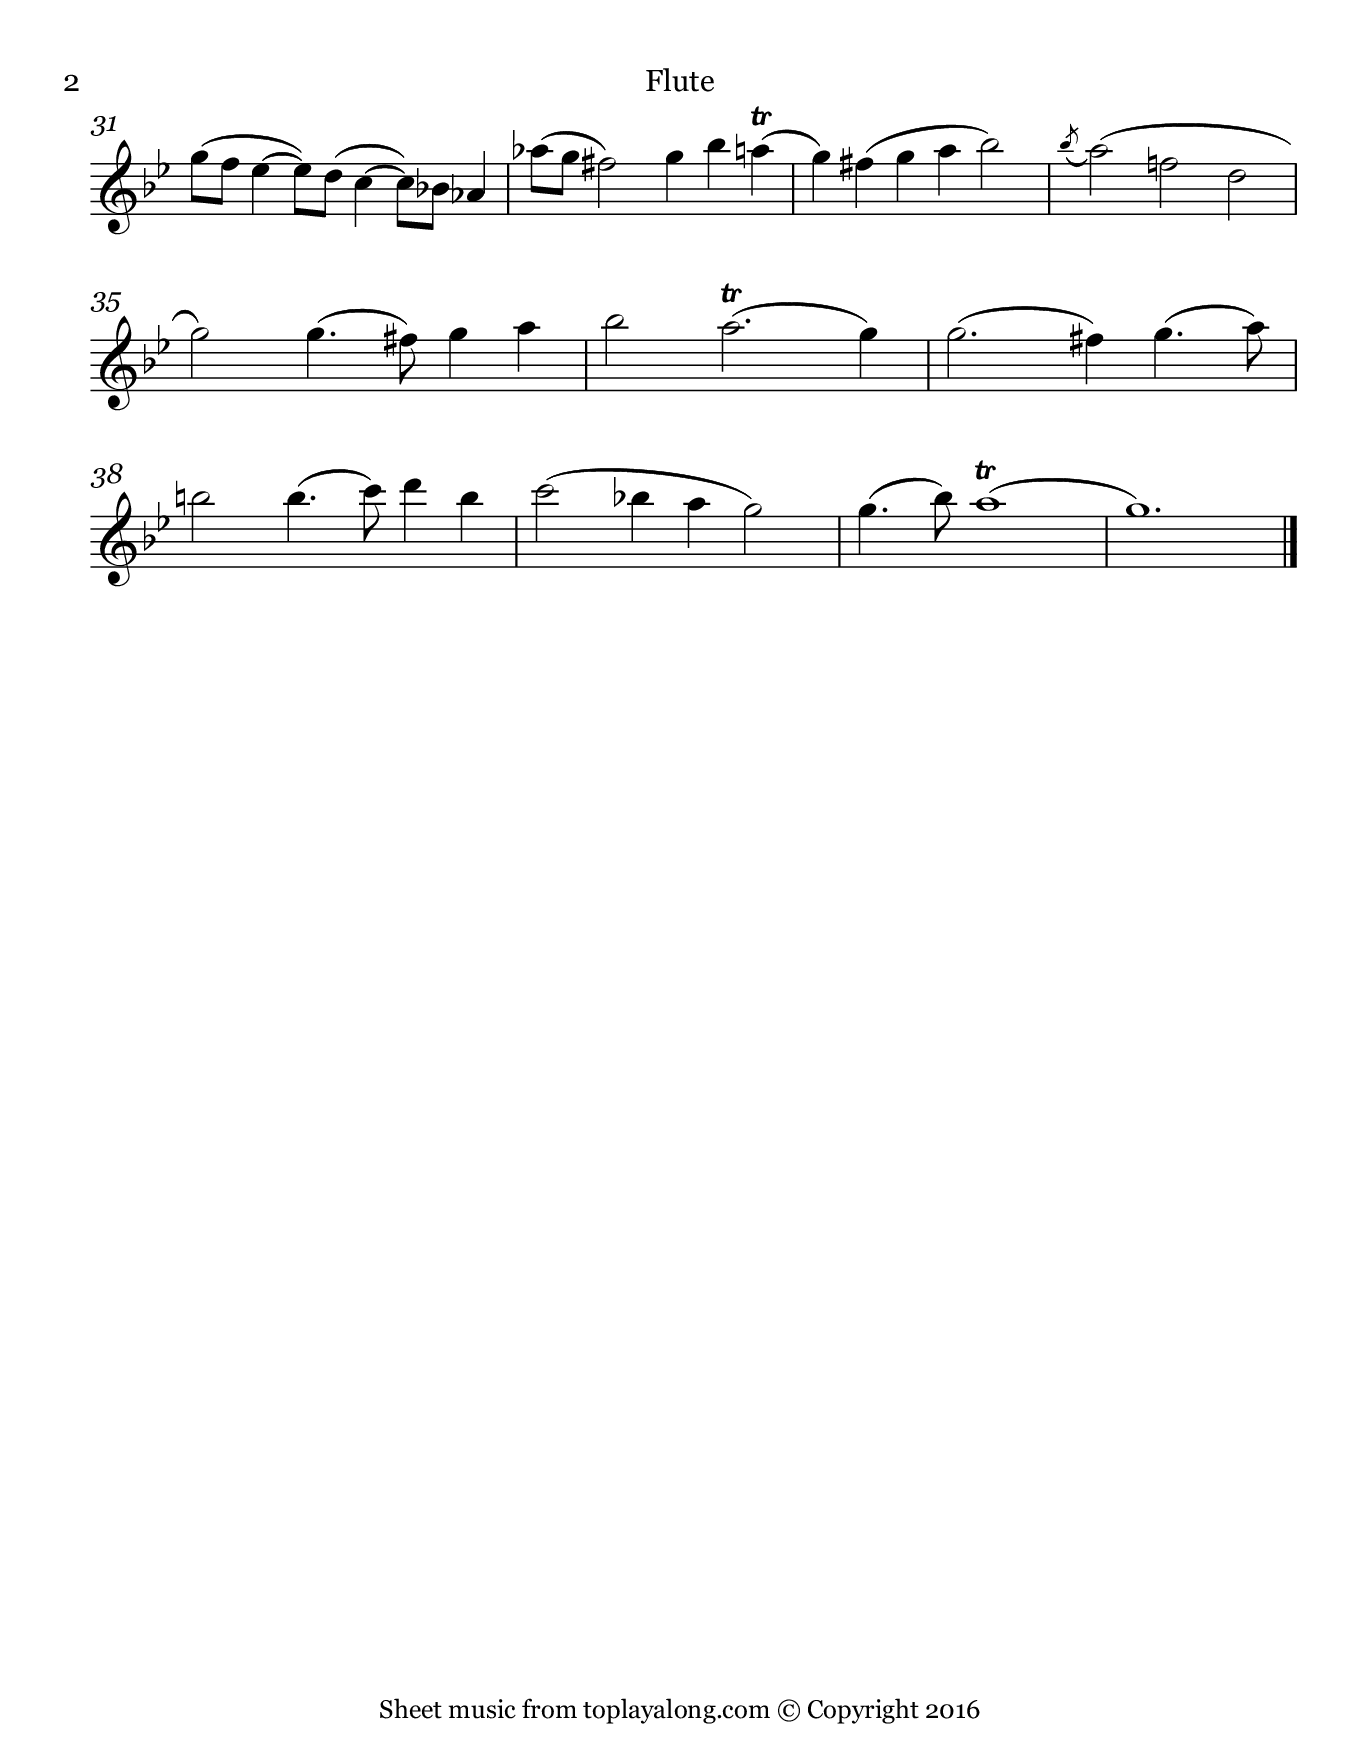 Chaconne by Vitali. Sheet music for Flute, page 2.